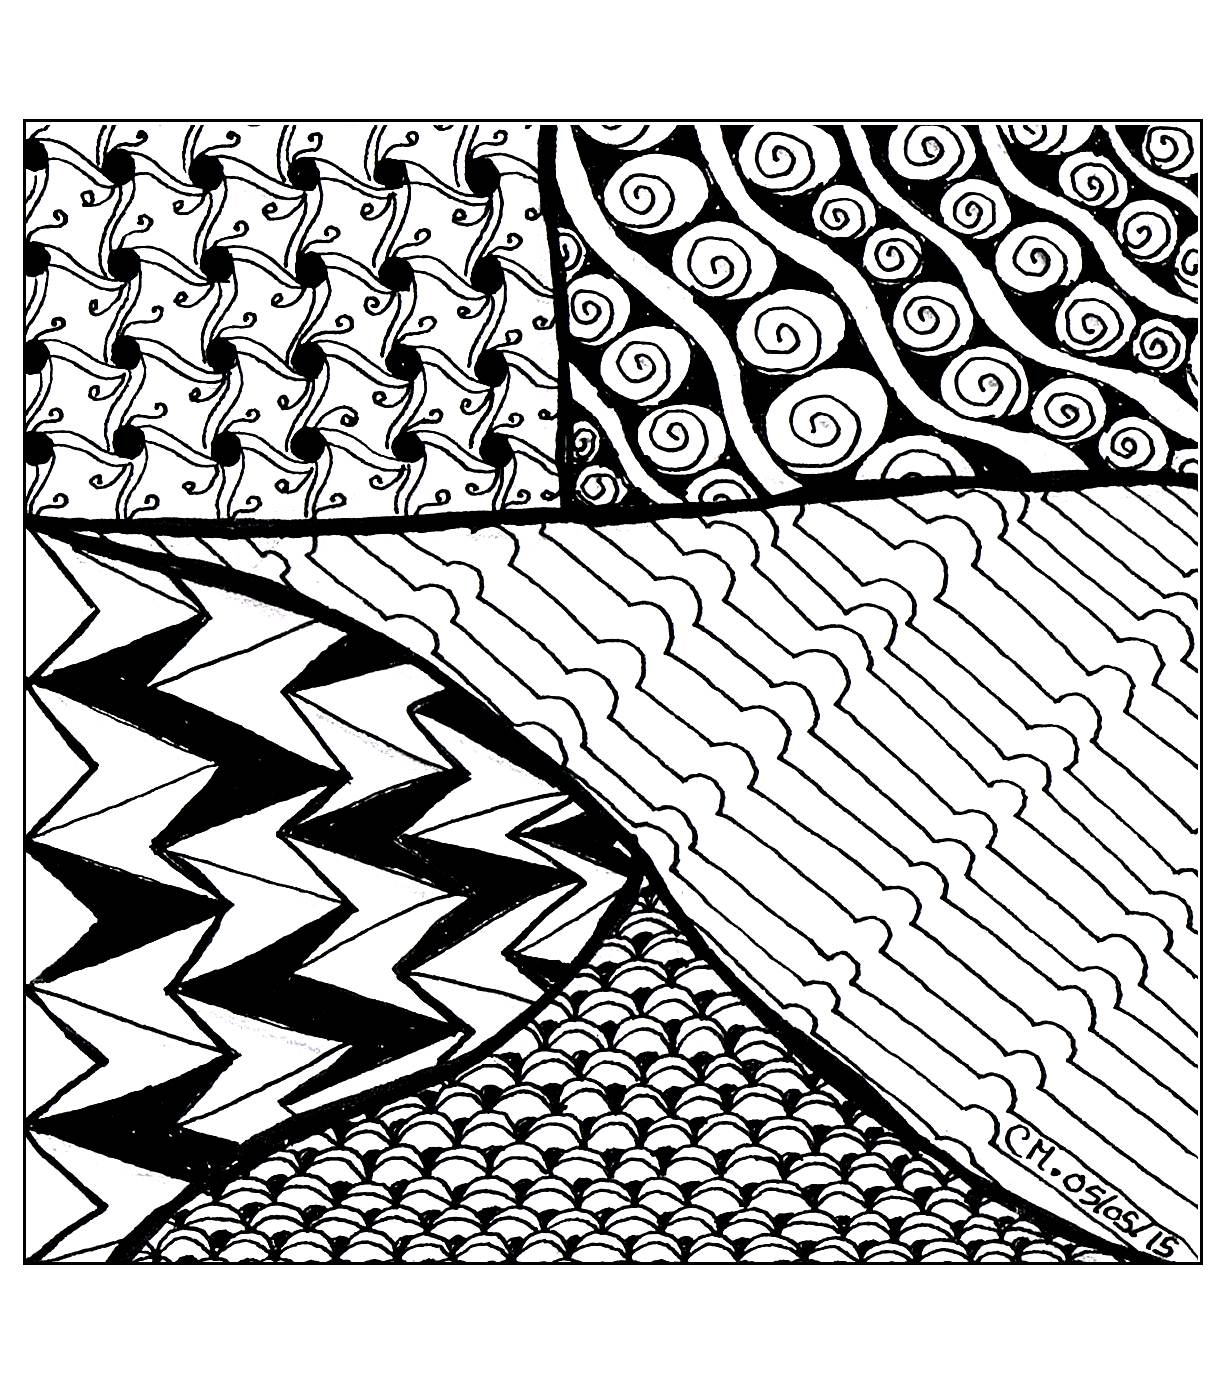 'Illusion', exclusive zentangle coloring page See the original work